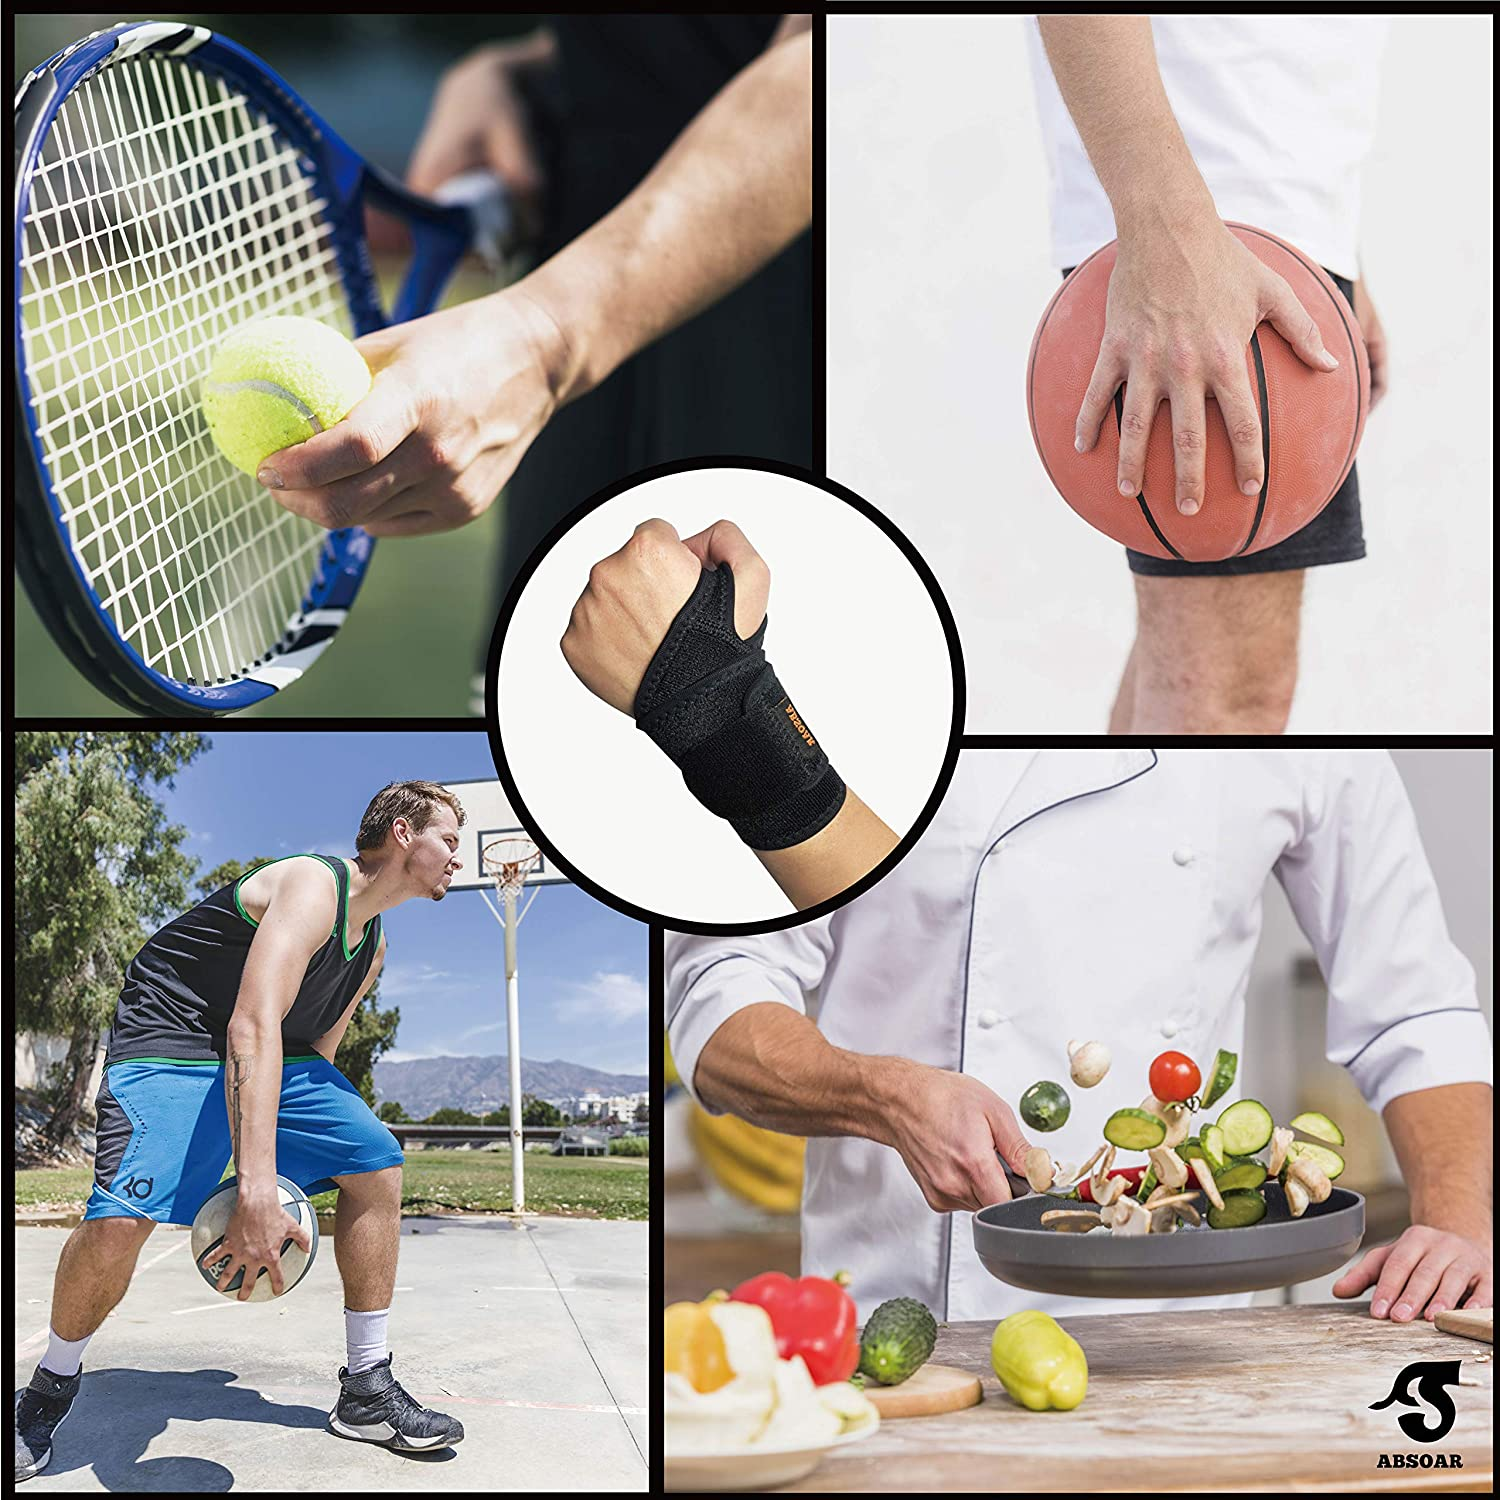 2 Packs ABSOAR Wrist Brace for Men Women Carpal Tunnel Support Wrist Pain Relief fit Both Right Left Hand with Special Thumb Design